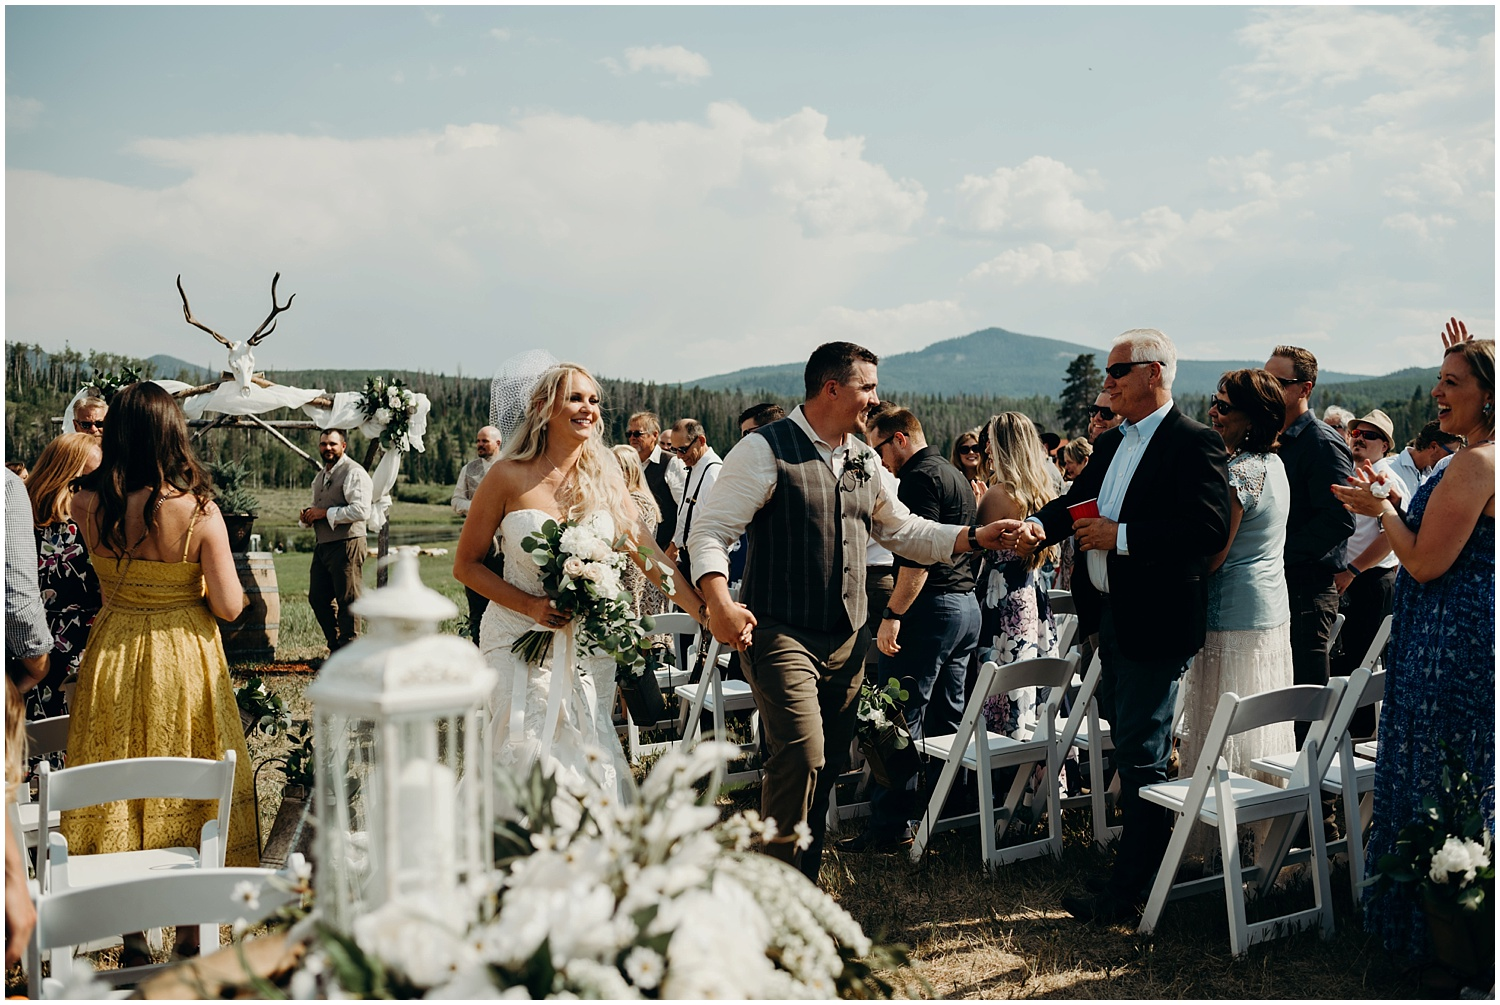 A ceremony and reception documented through photojournalism in Northern, Colorado.